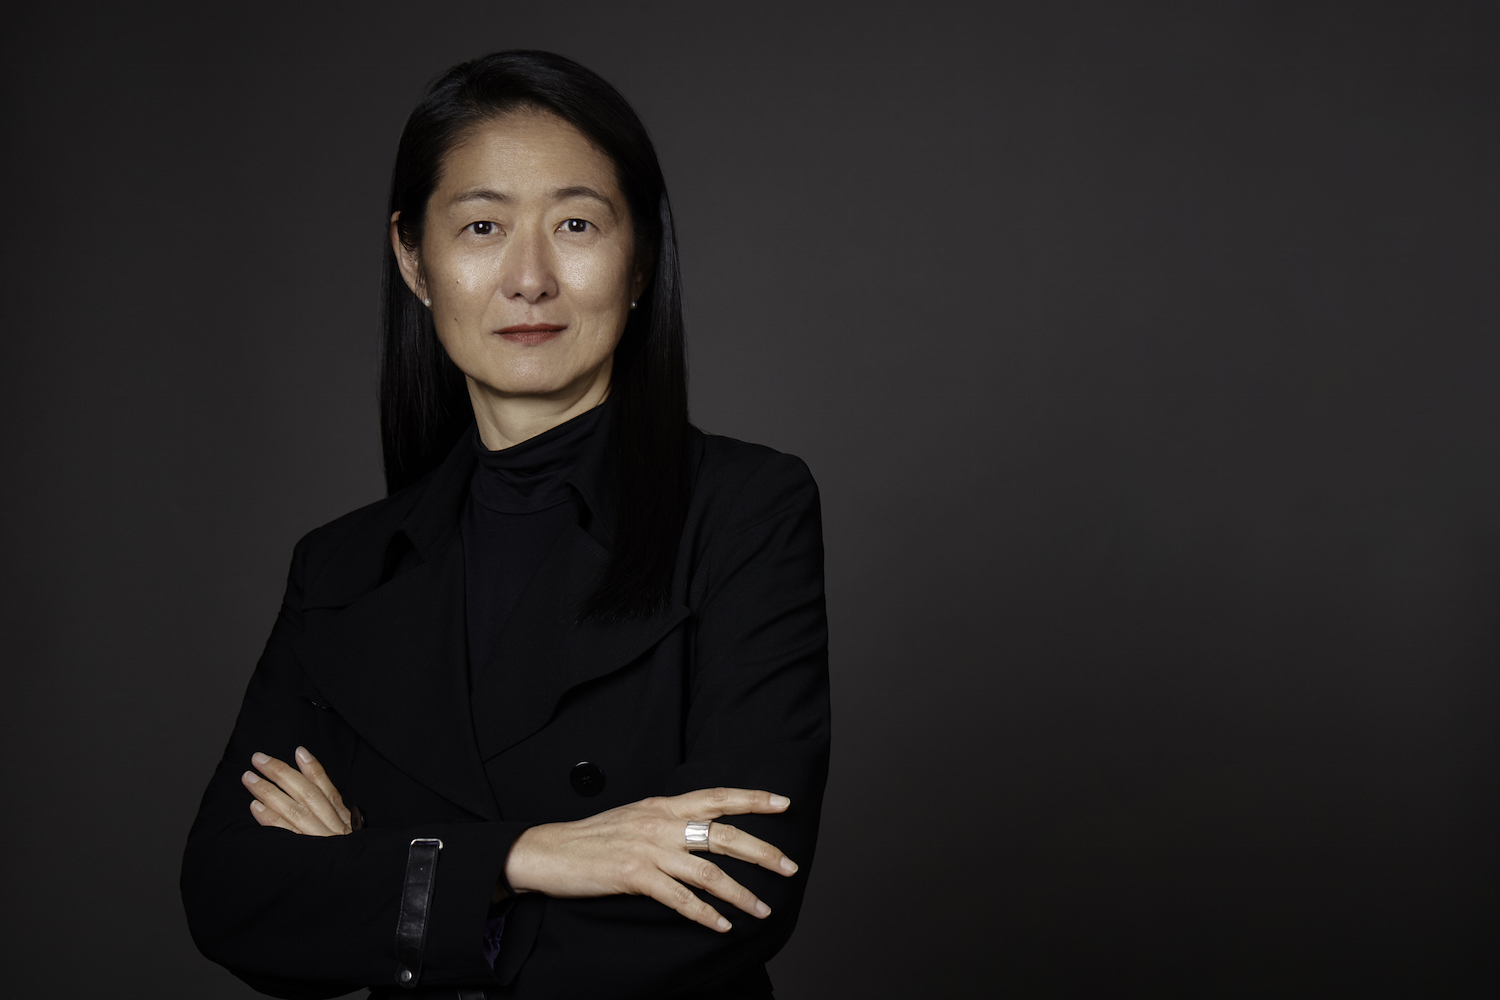 Vivian Lee, FAIA, LEED AP, Studio Executive Director, Woods Bagot; AIA New York Women in Architecture Committee Co-Chair. Image courtesy of: Woods Bagot